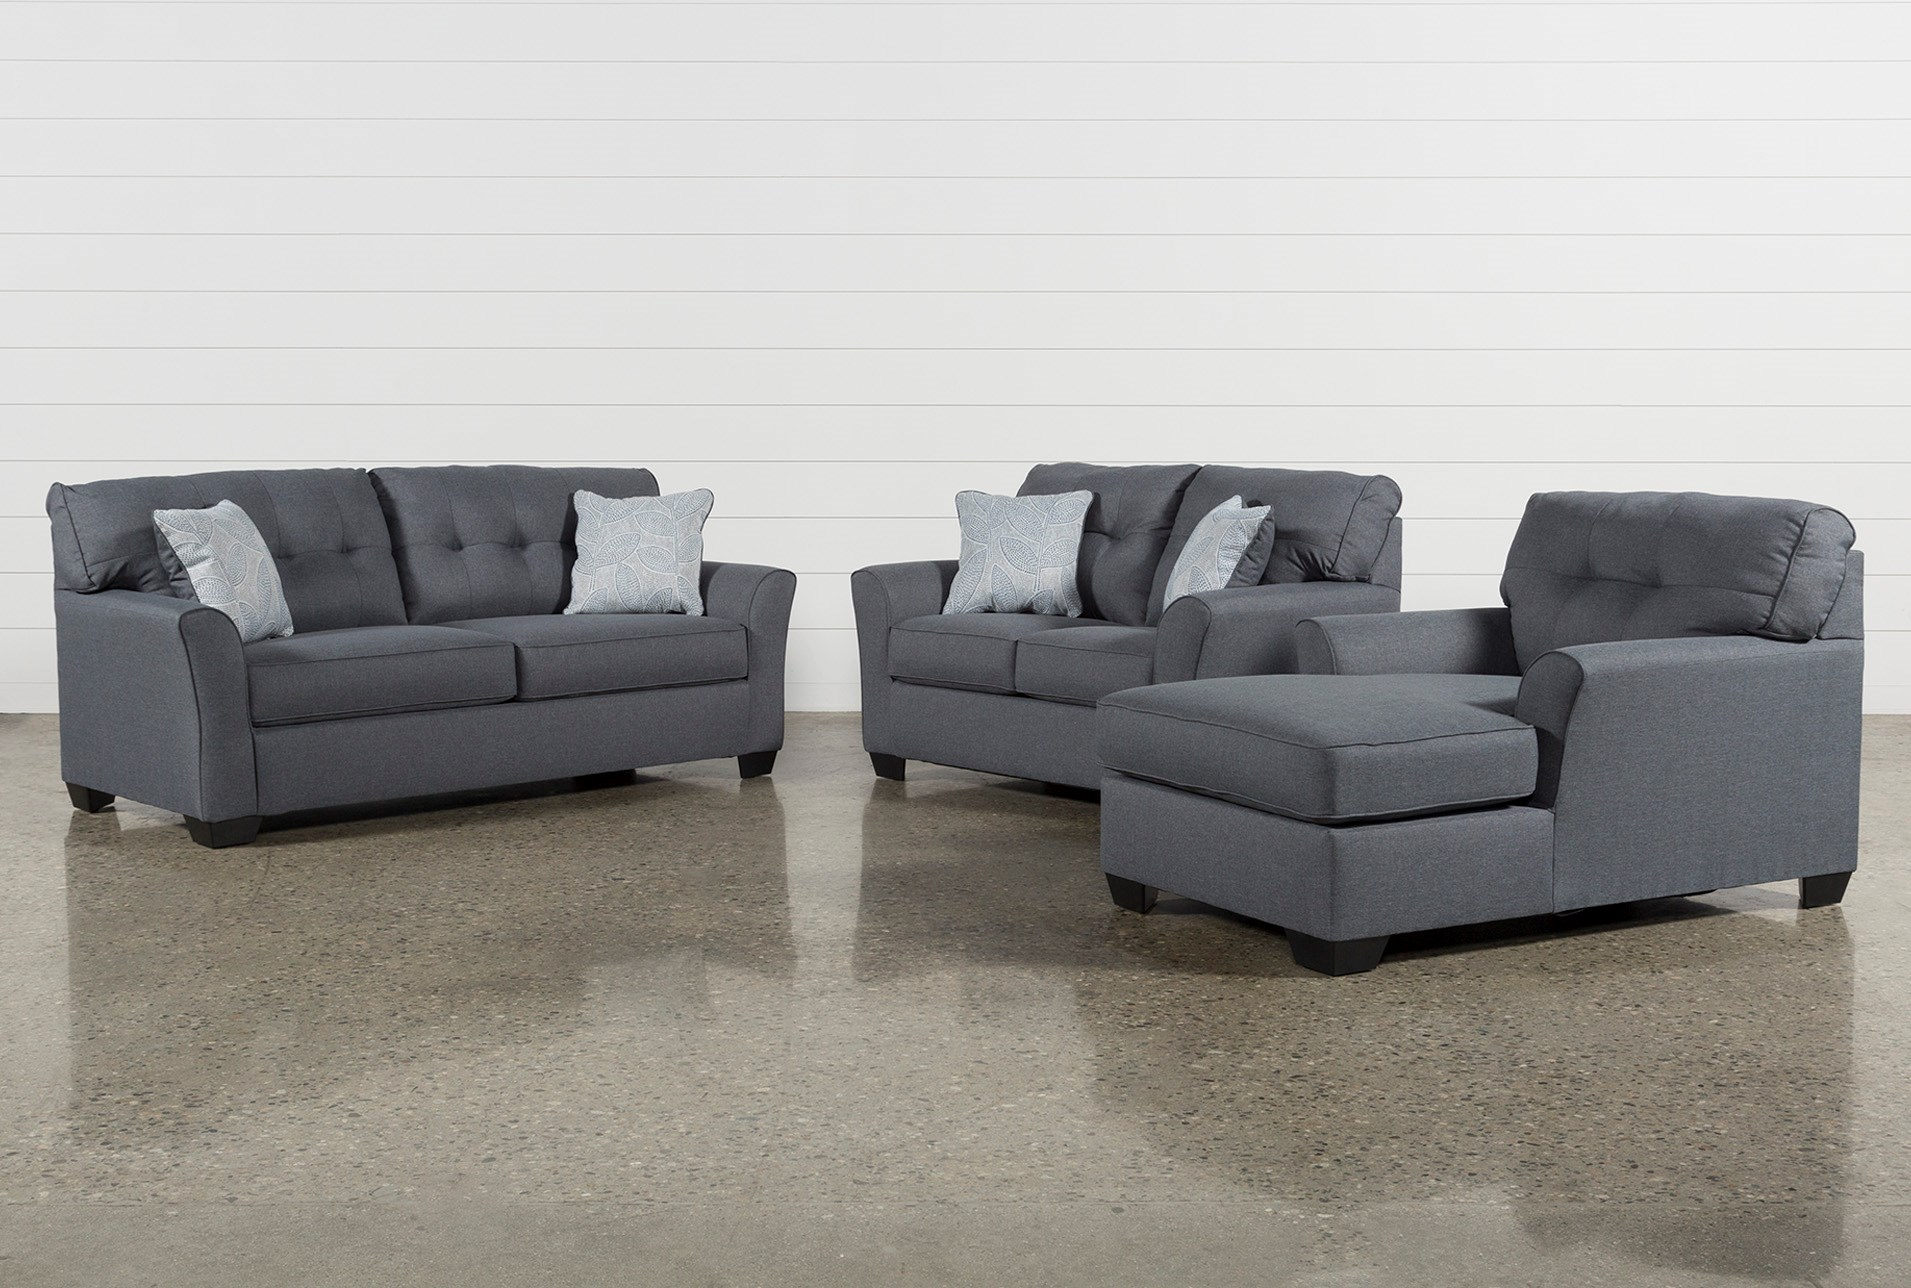 Jacoby Gunmetal 3 Piece Living Room Set Qty 1 Has Been Successfully Added To Your Cart